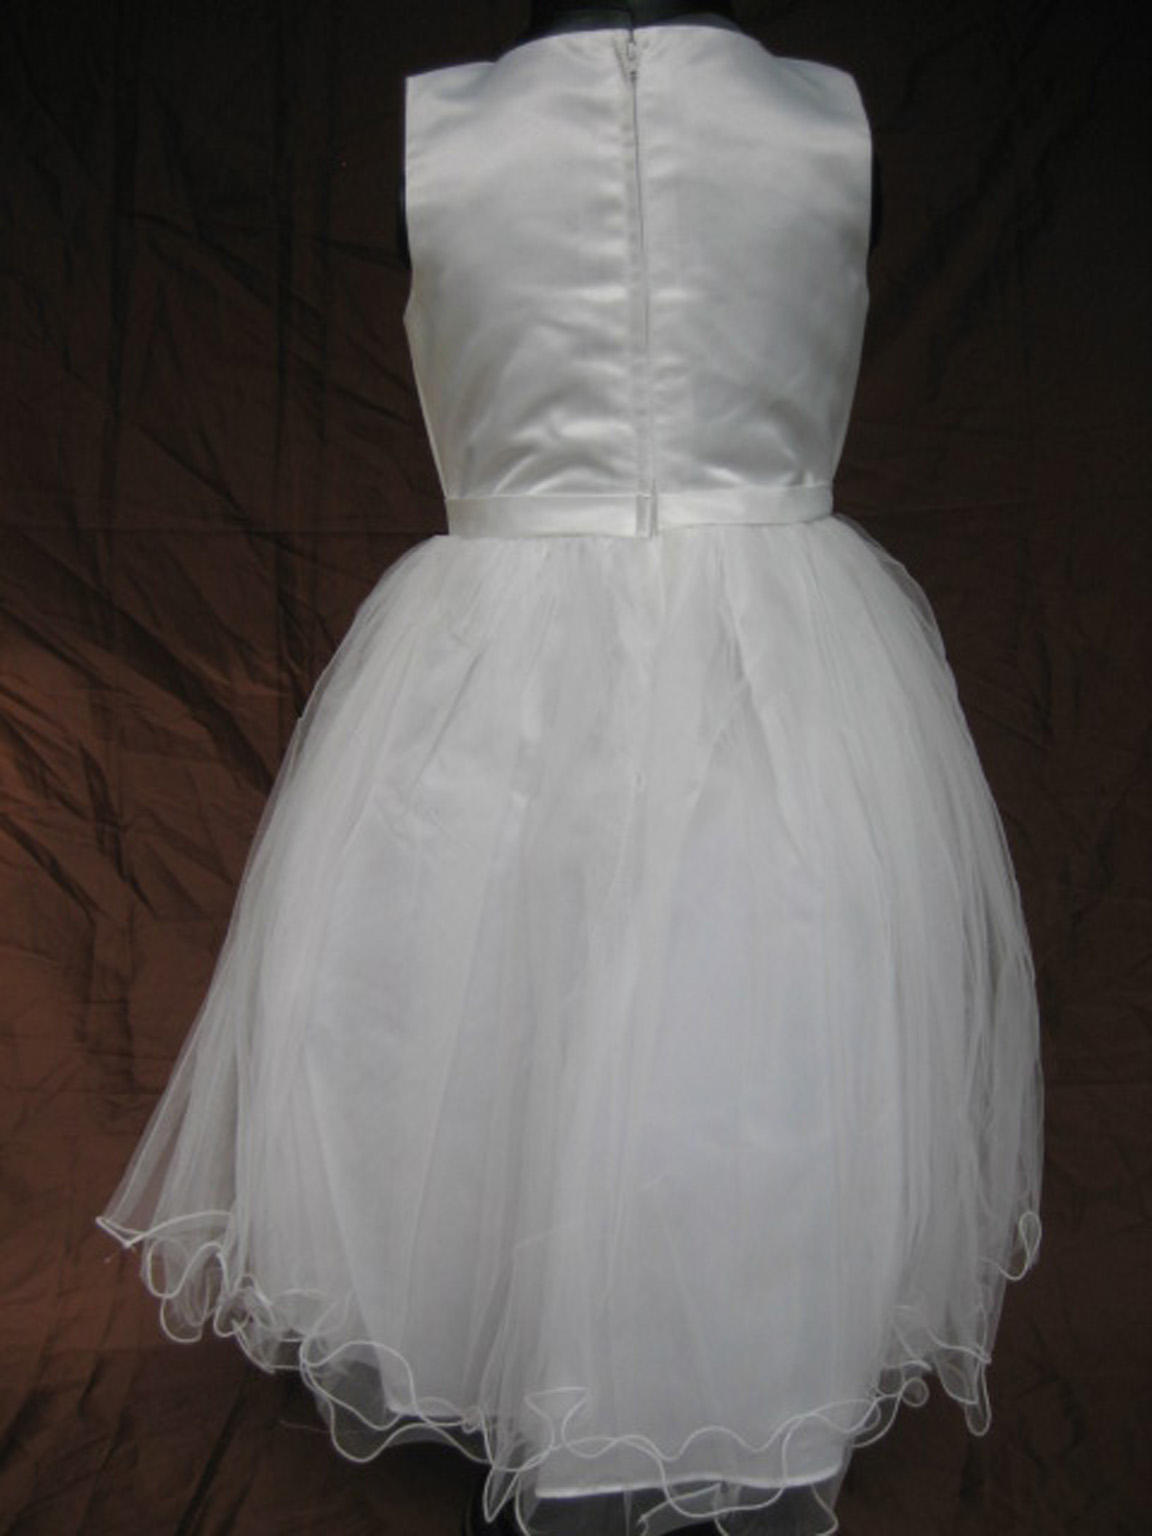 Dress Eva met haarband